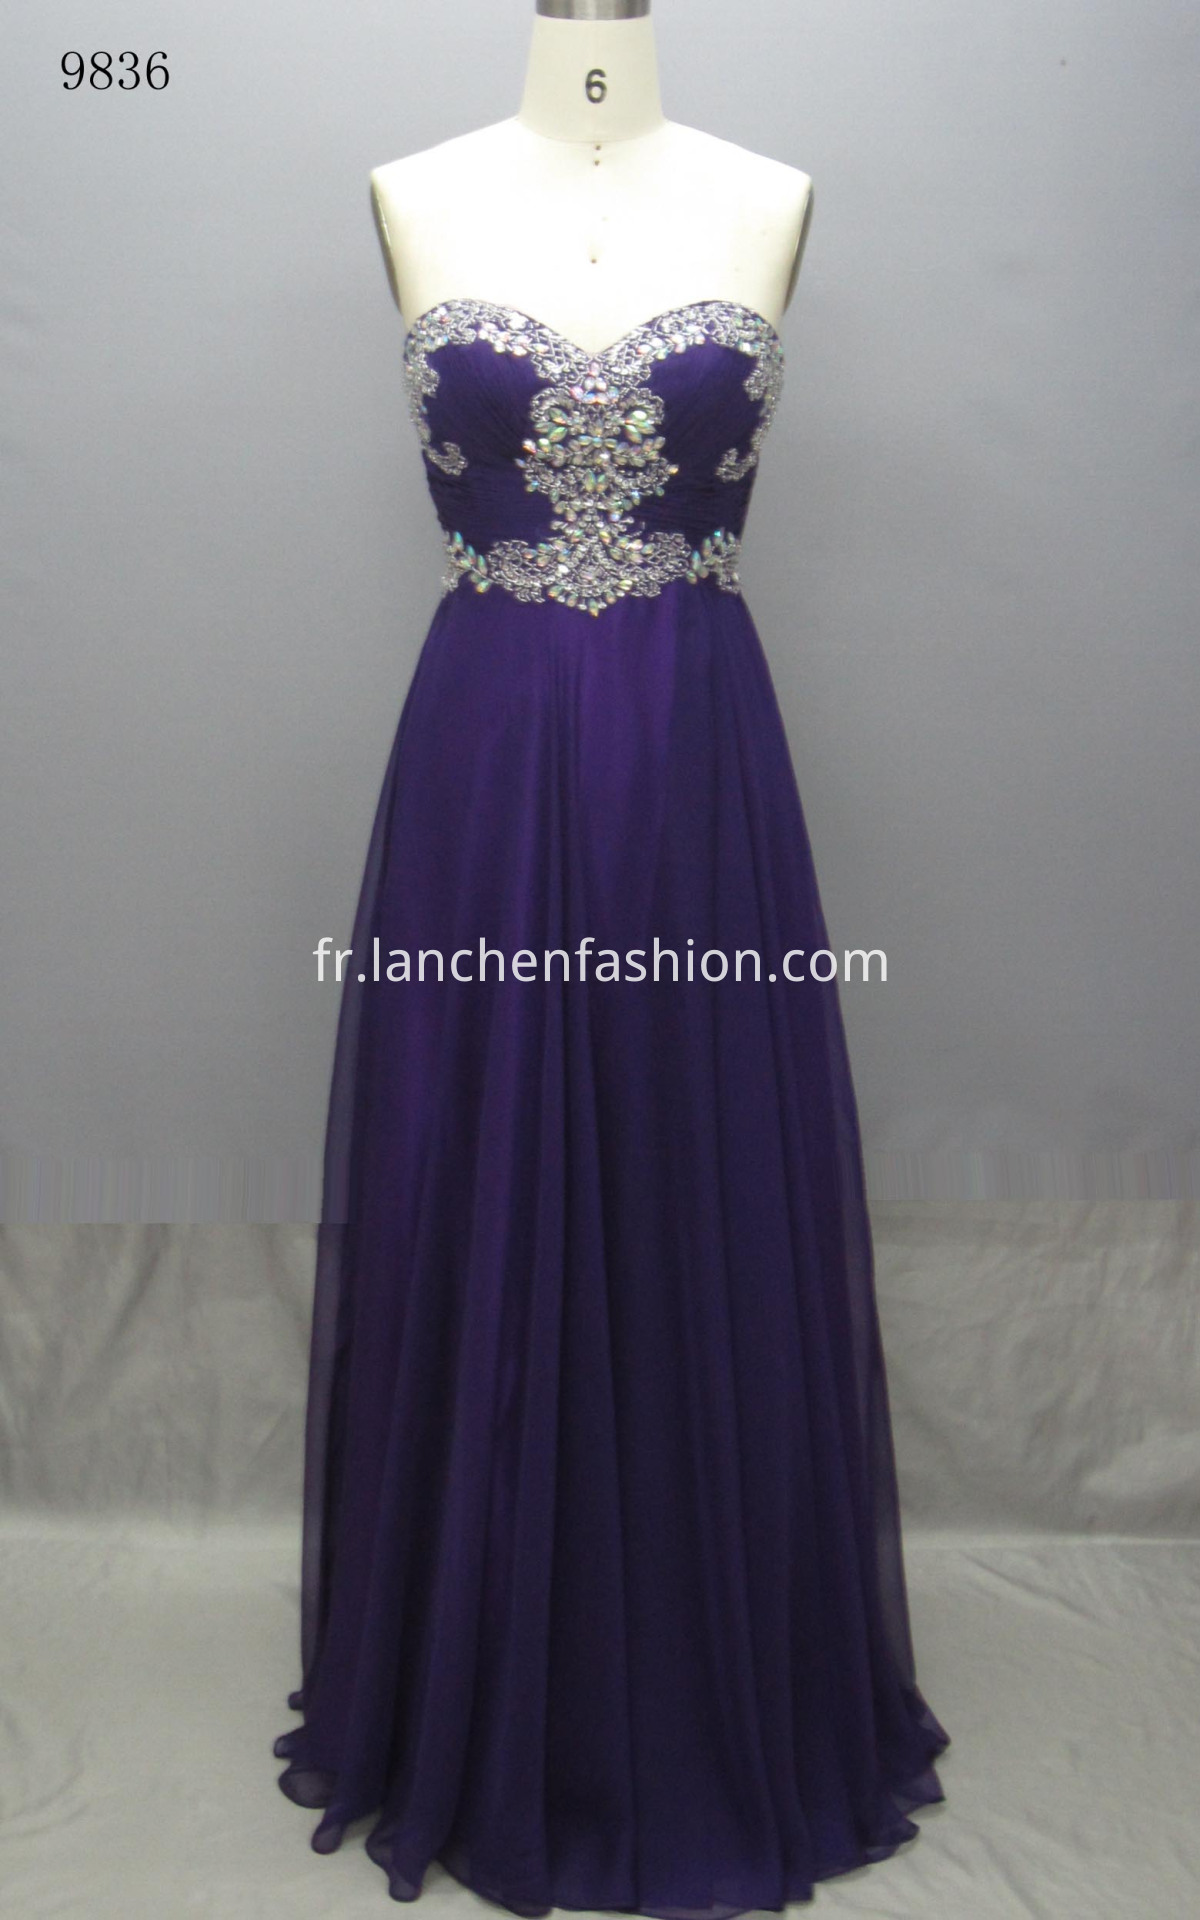 Sleeveless Elegant Dress PURPLE